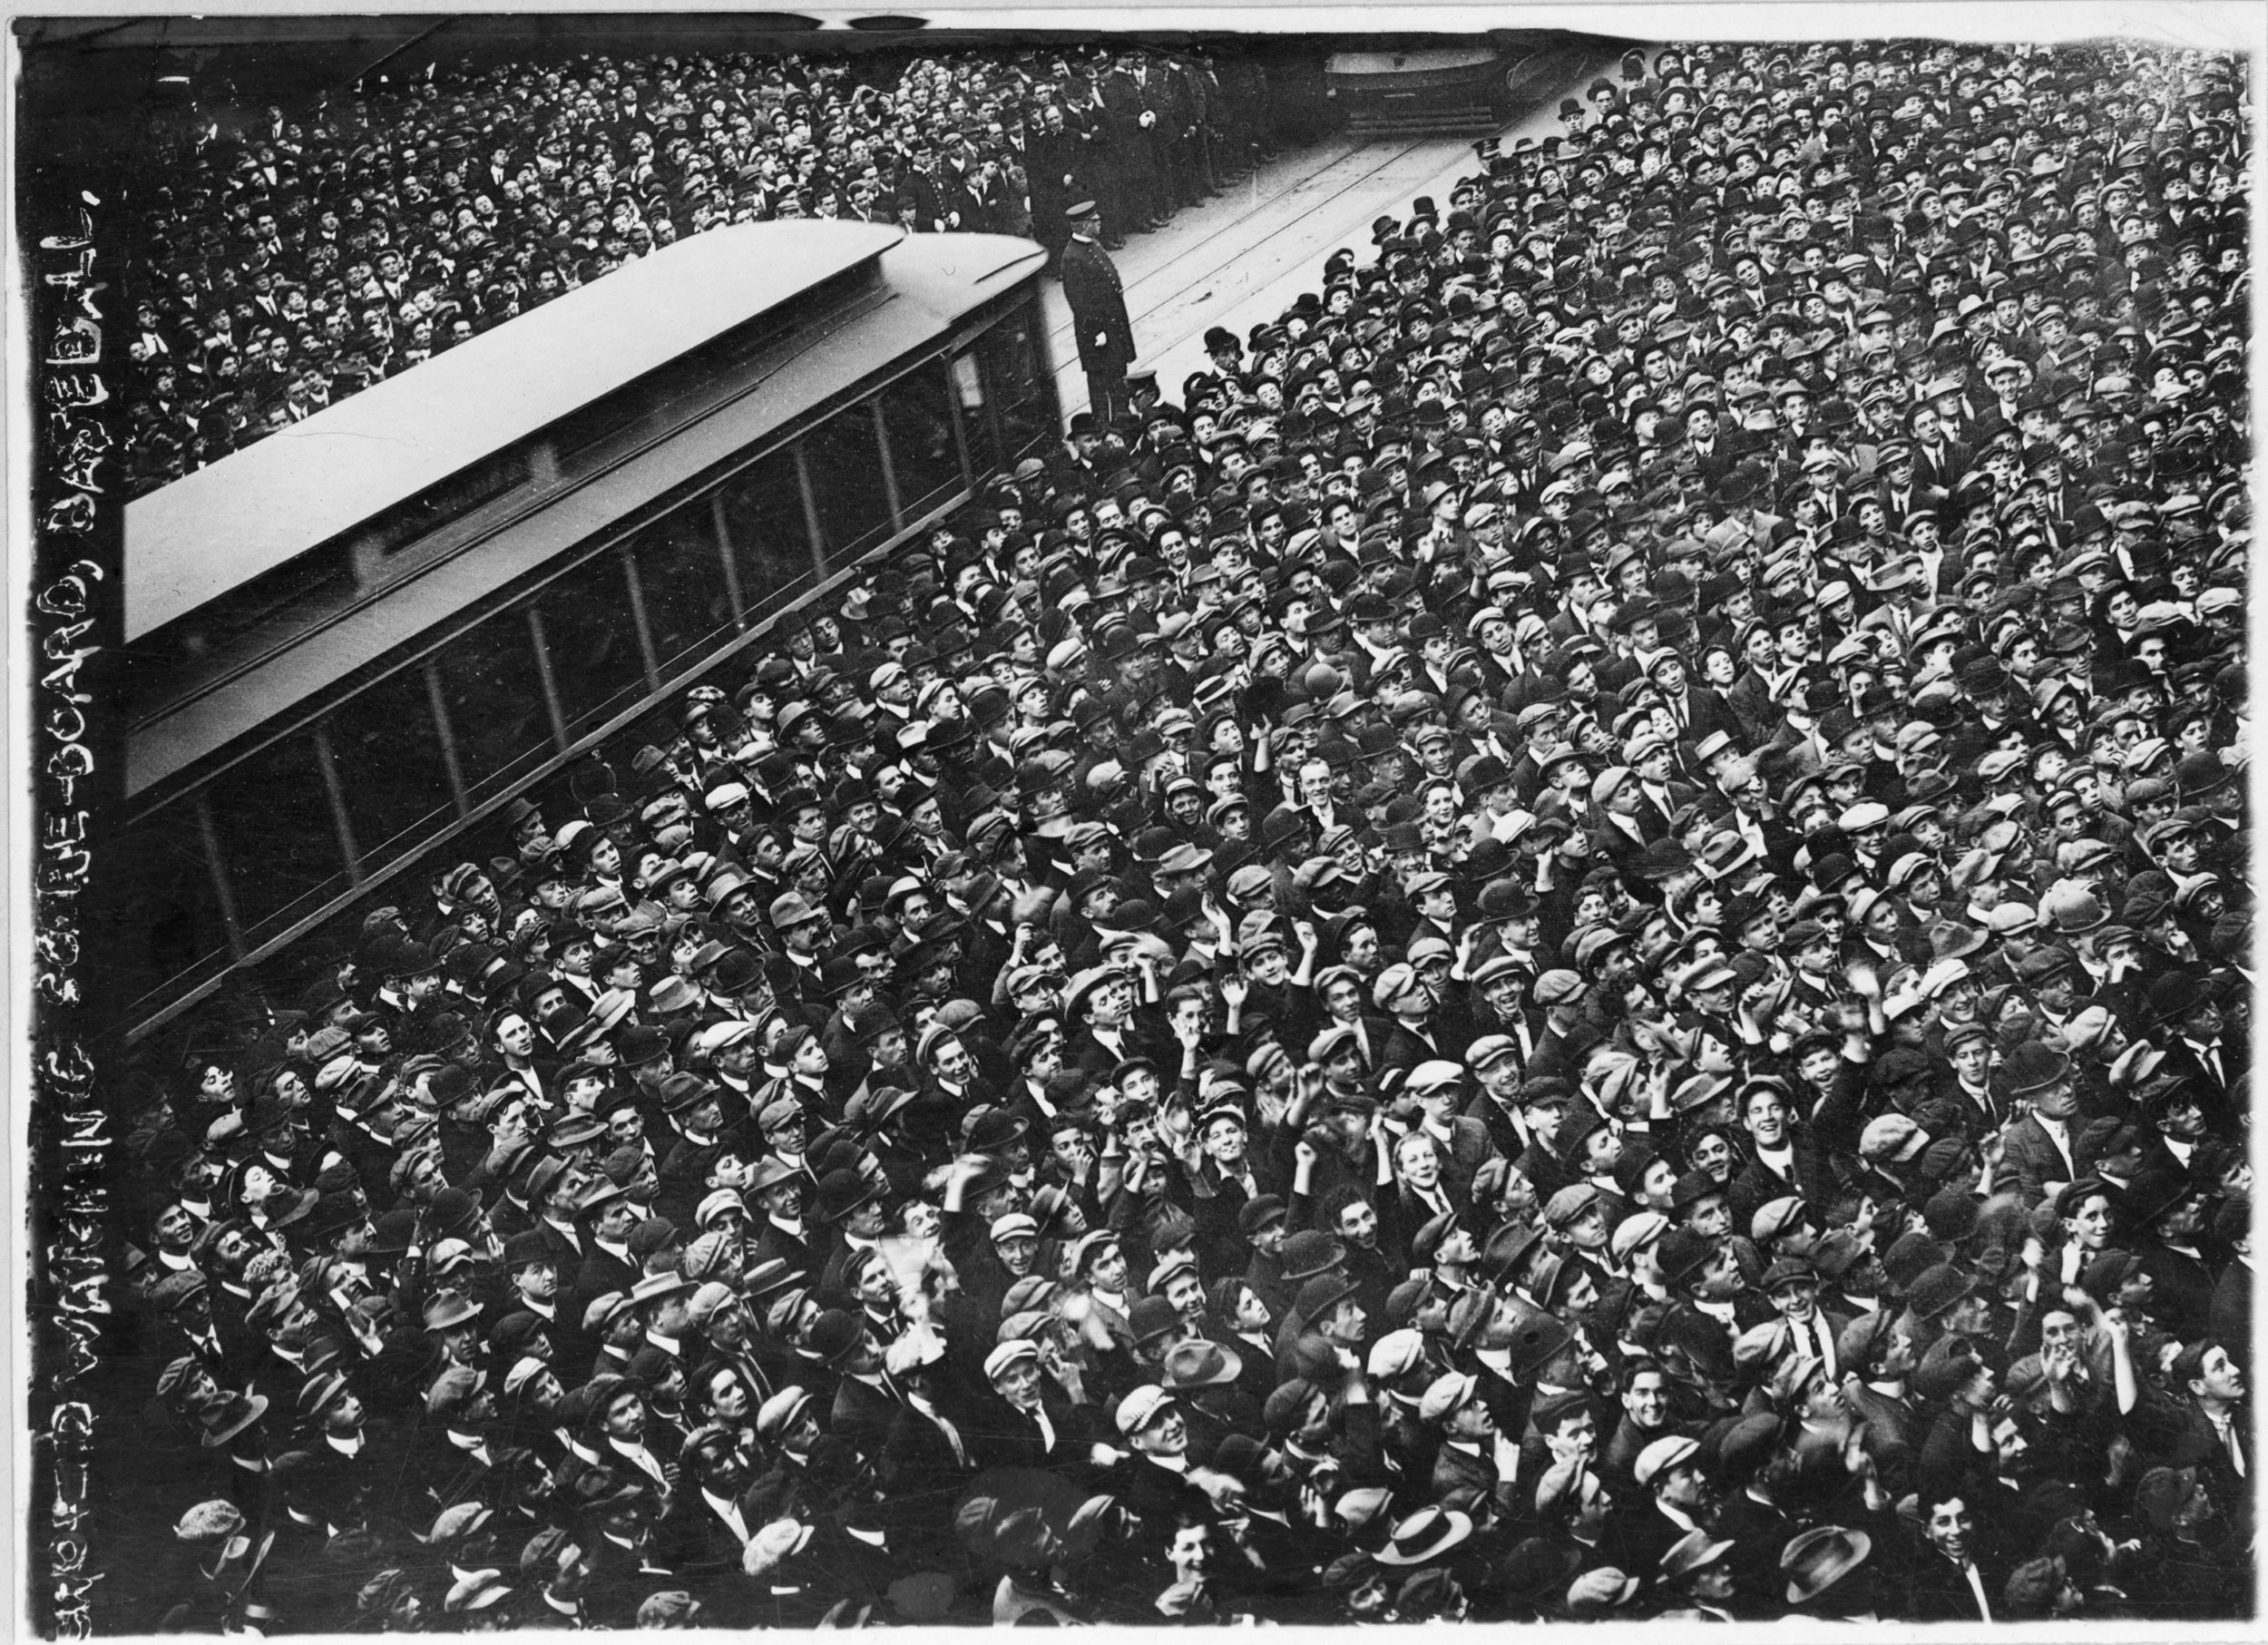 Throngs of baseball fans crowd around a scoreboard in New York to watch for updates on a 1911 World Series game, 1911 (The George Grantham Bain Collection - Library of Congress archive)